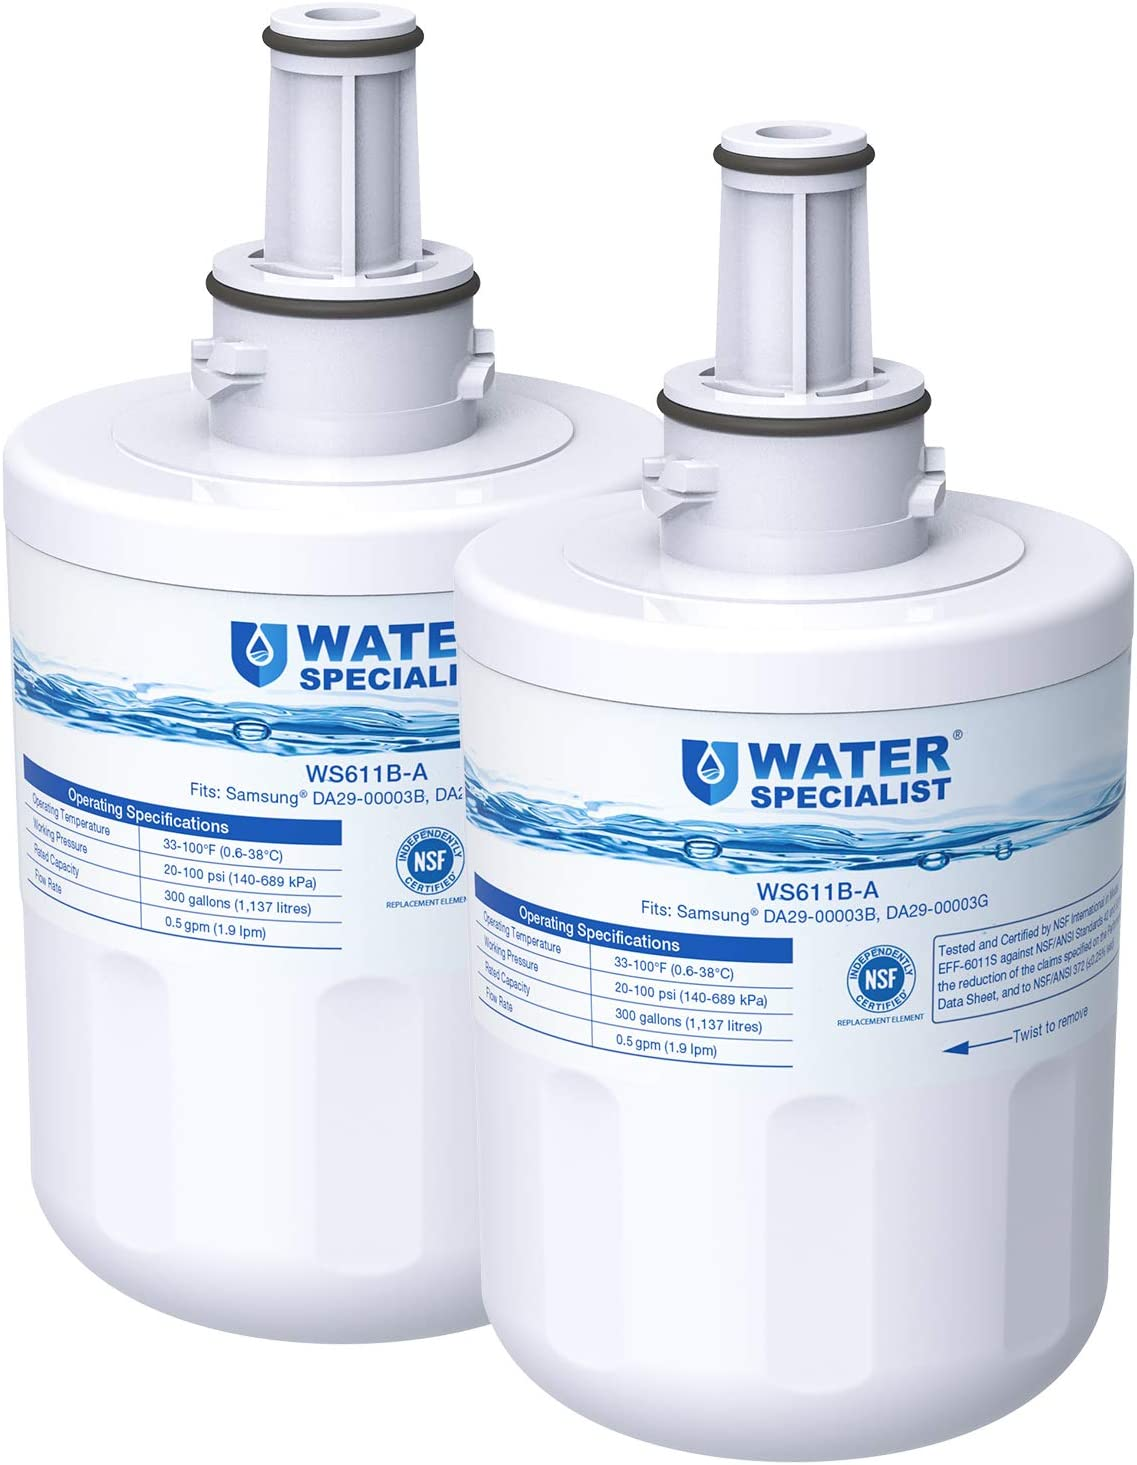 Waterspecialist NSF 53&42 Certified DA29-00003G Refrigerator Water Filter, Replacement for Samsung DA29-00003B, RSG257AARS, RFG237AARS, HAFCU1, RS22HDHPNSR, WSS-1 (Pack of 2)